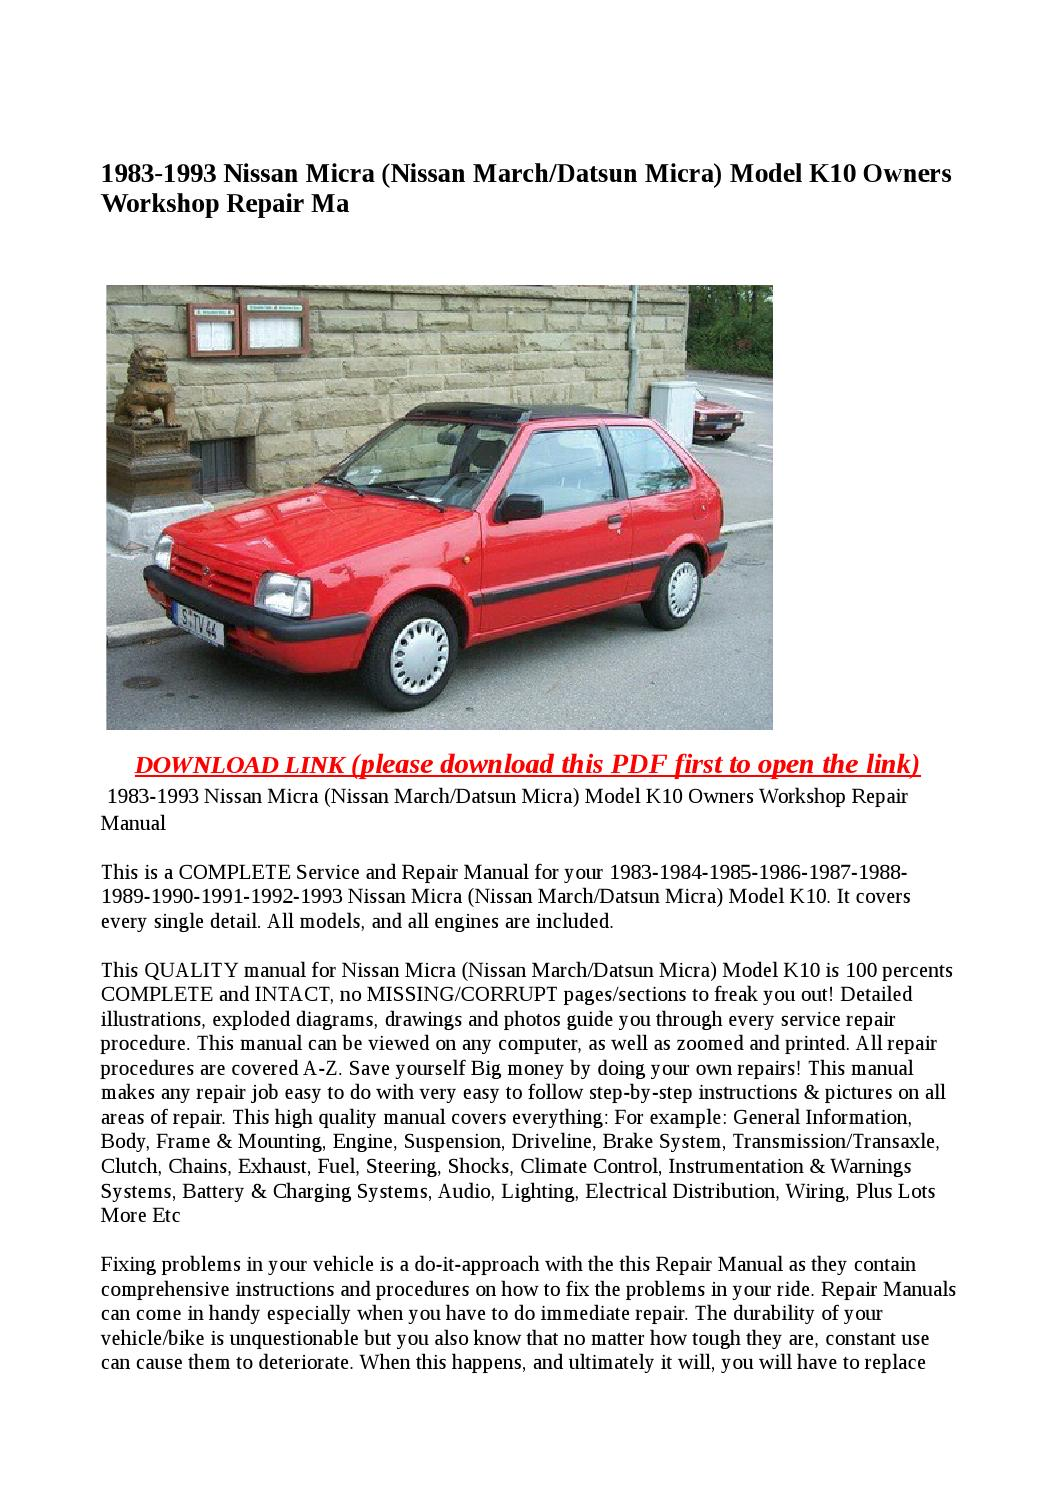 1983 1993 nissan micra (nissan march datsun micra) model k10 owners  workshop repair manual by Anna Tang - issuu